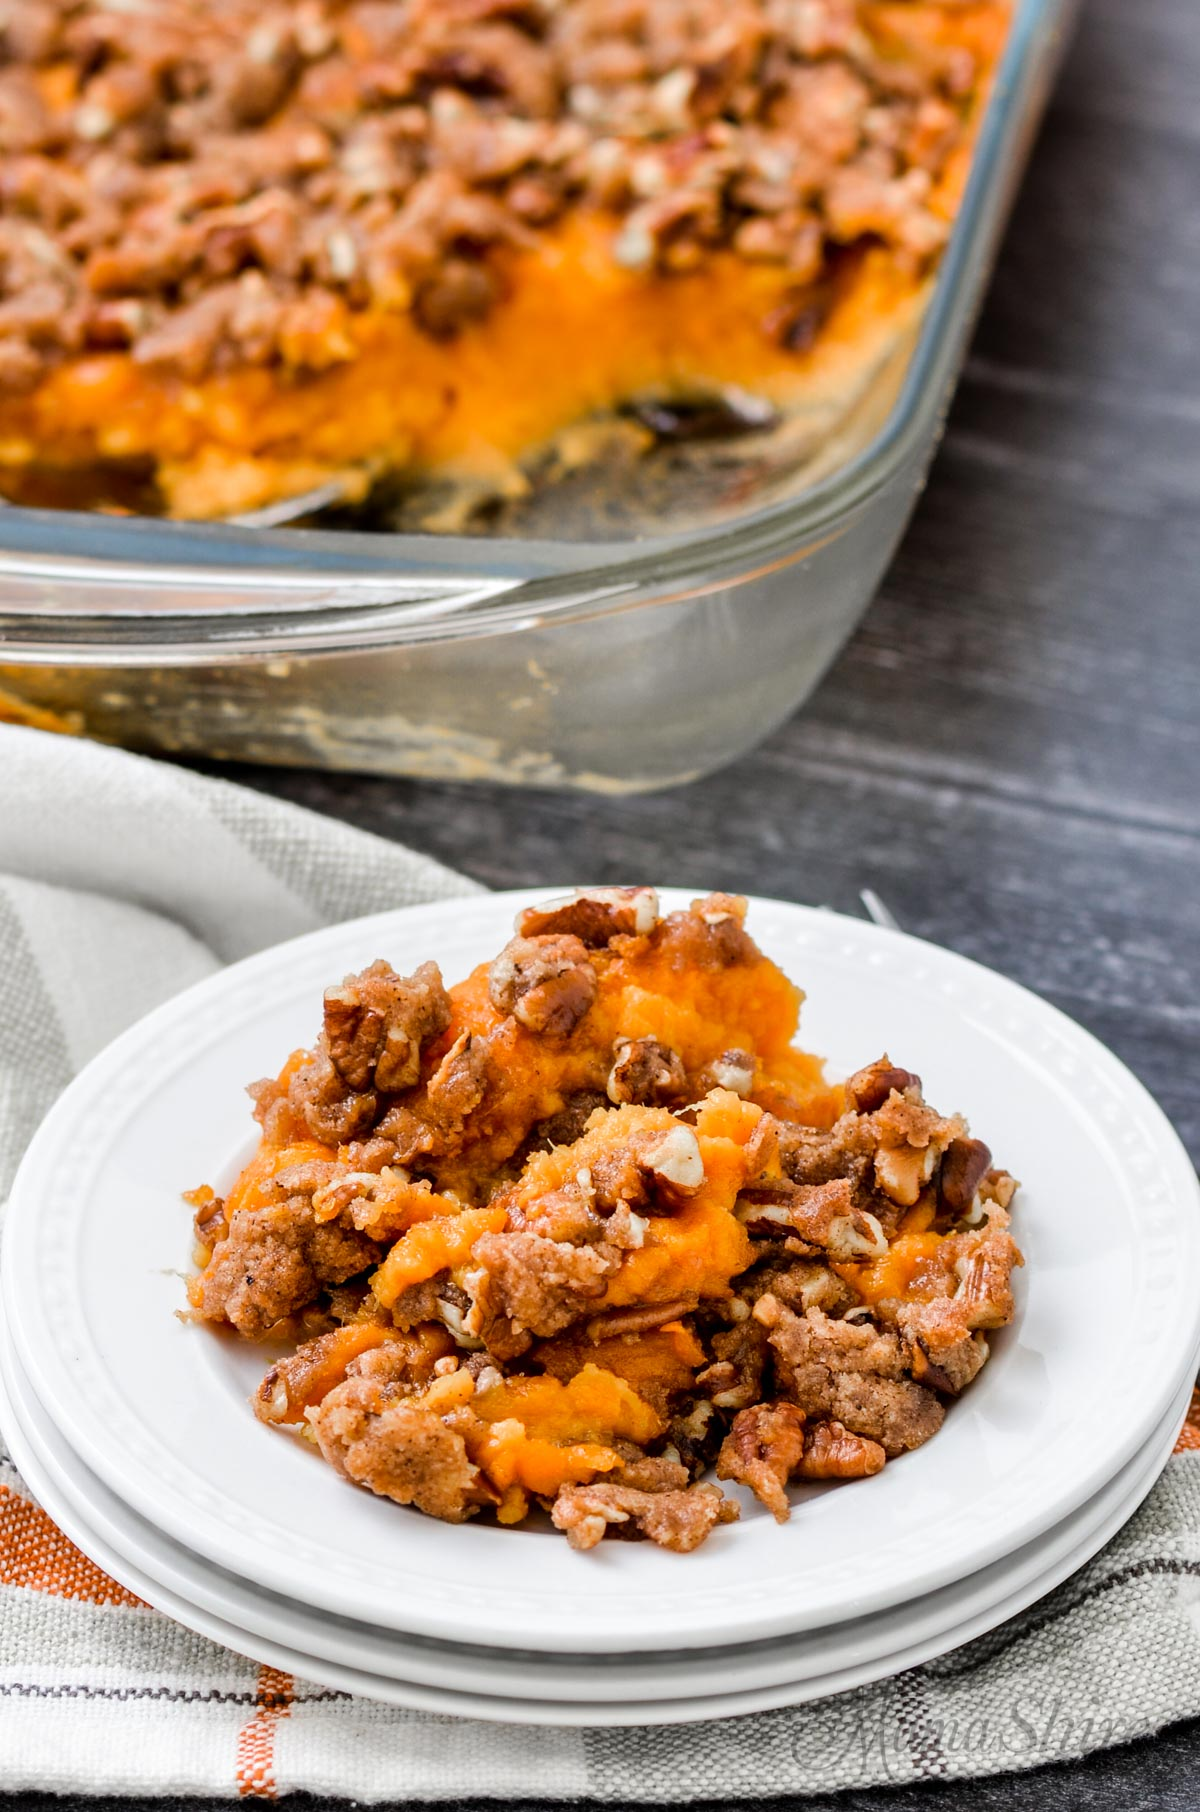 A white plate with a serving of sweet potato casserole.